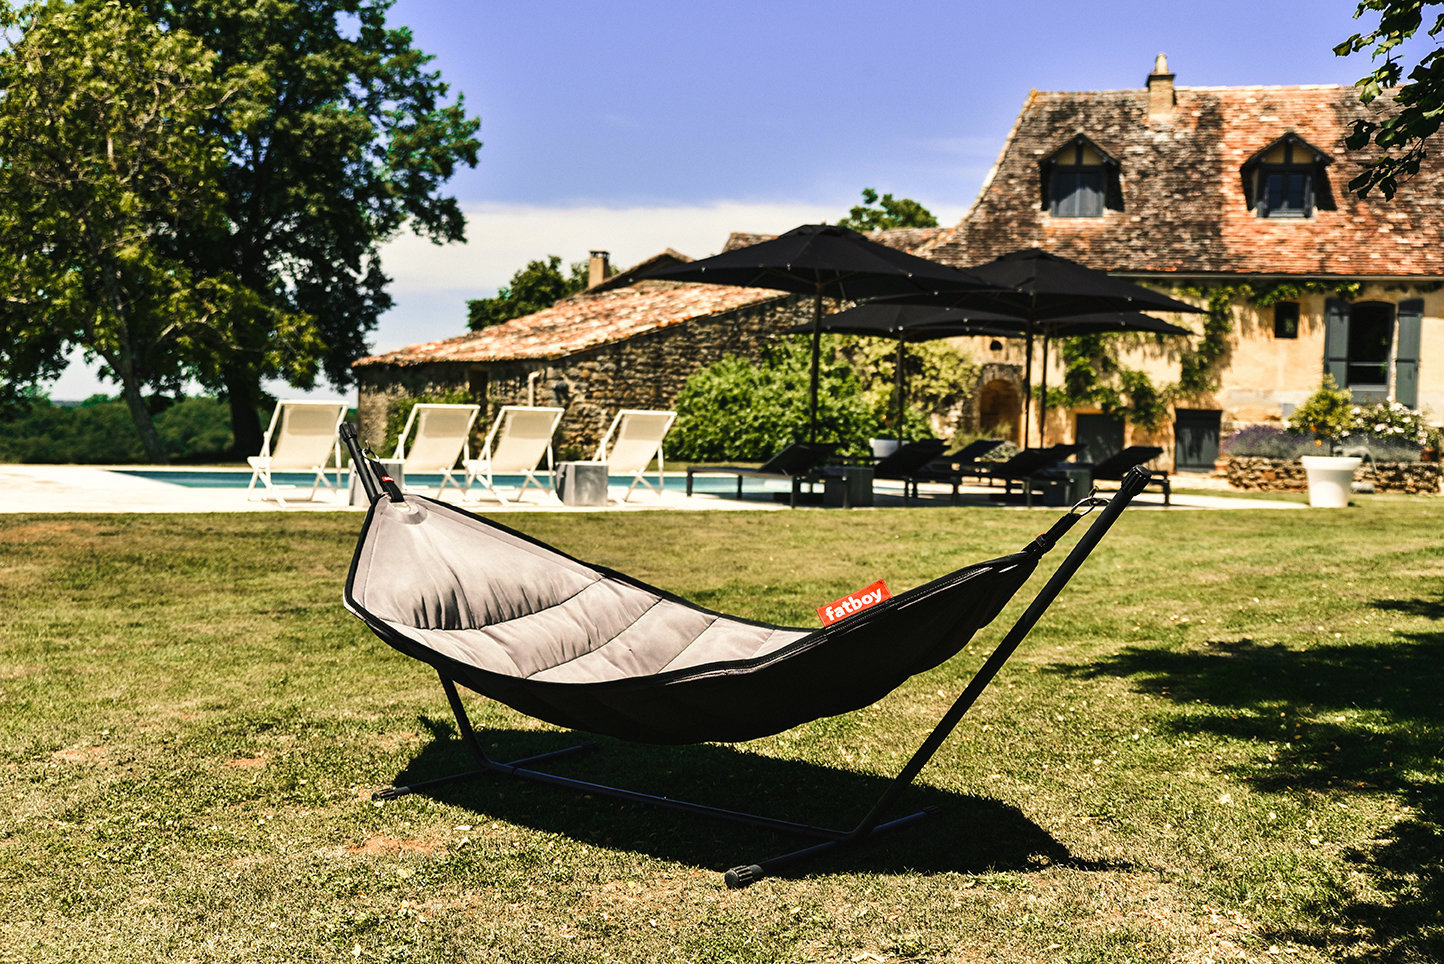 Stunning French holiday home with a black Fatboy double hammock on a lawn in front of a private pool and walnut tree